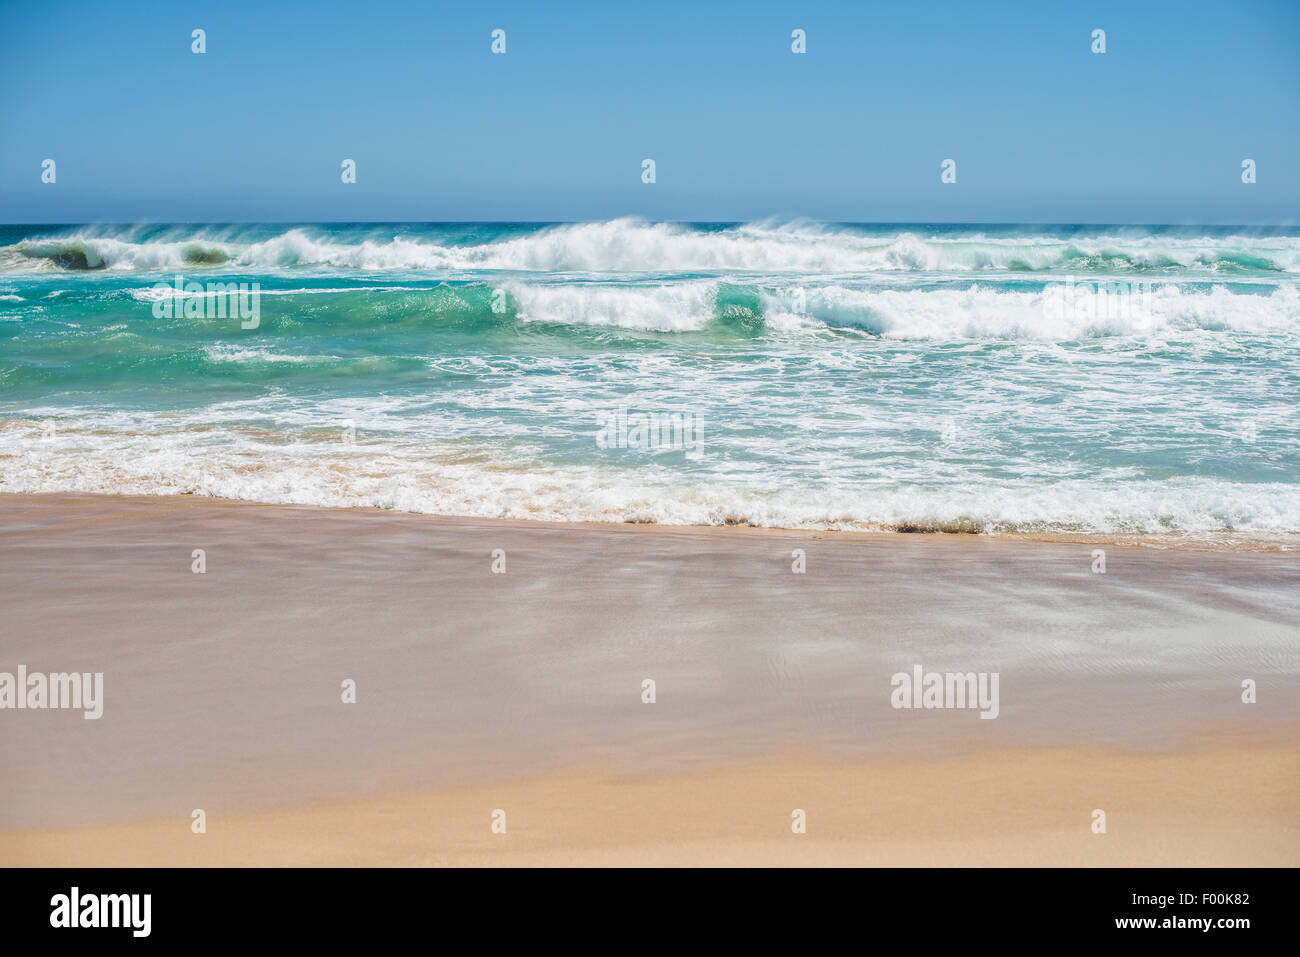 View of sea waves and sea spray, from the beach Stock Photo